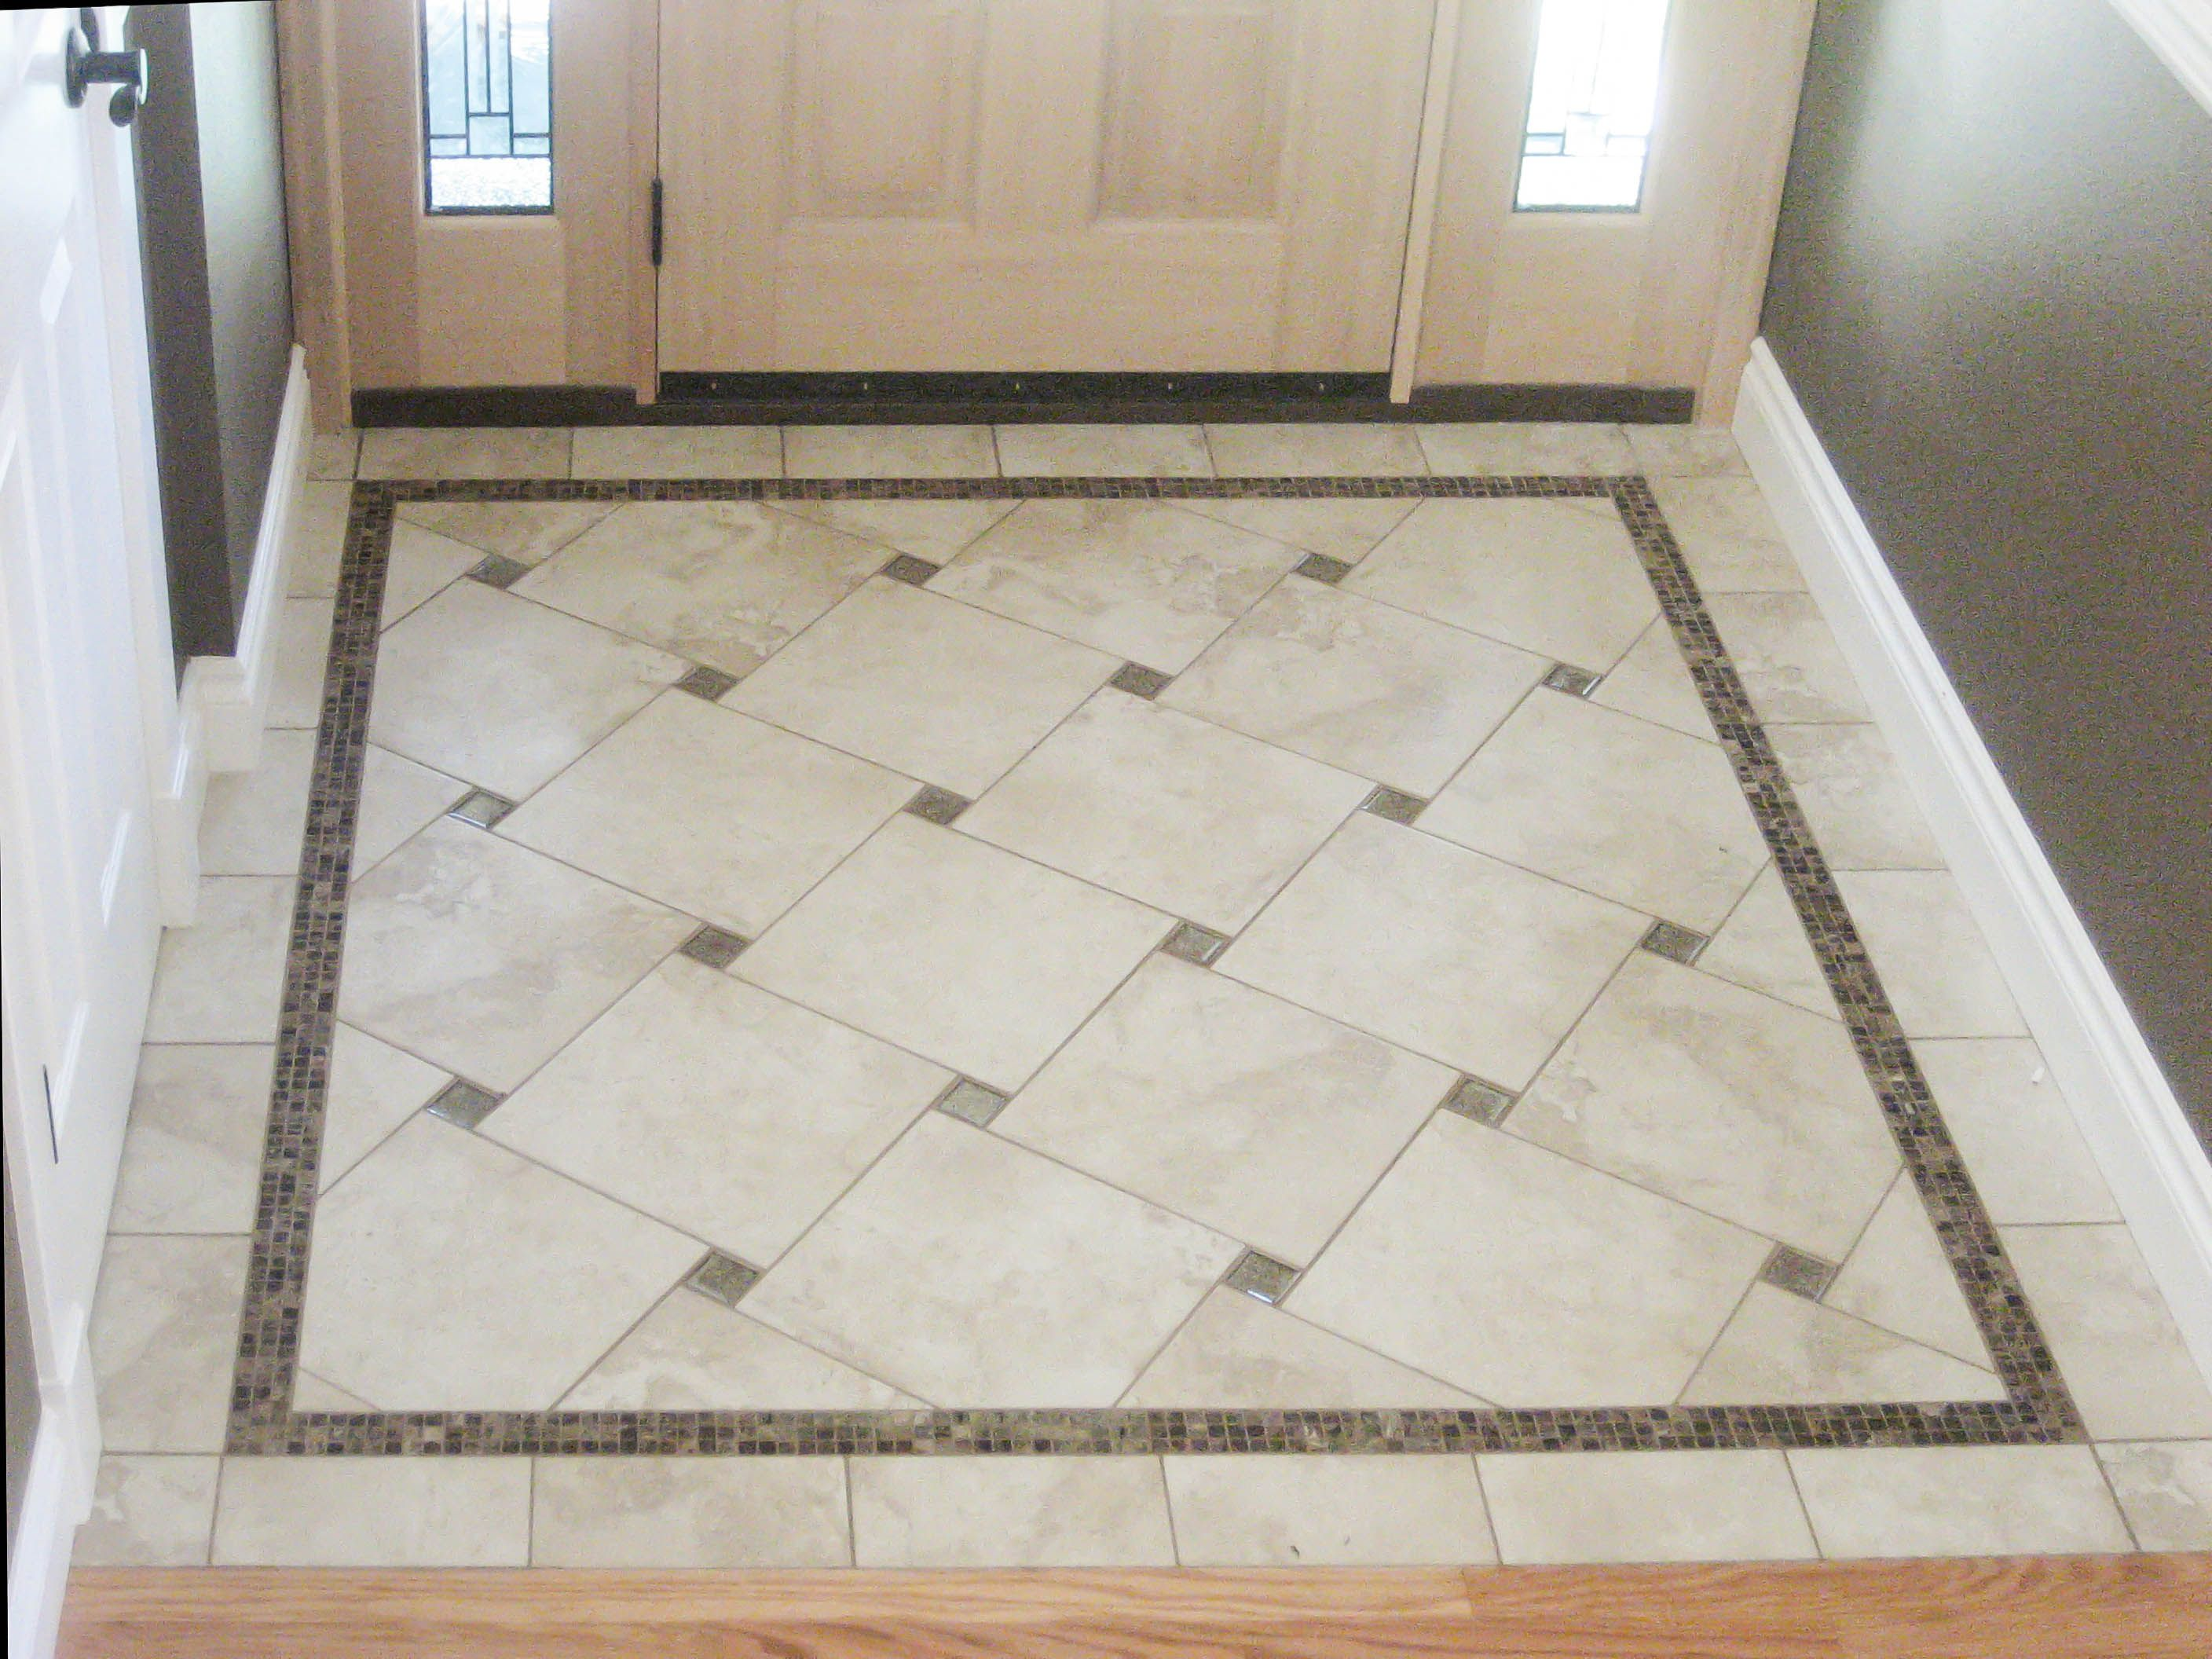 entry floor tile ideas entry floor photos gallery seattle tile contractor irc tile - Bathroom Tiles Designs Gallery